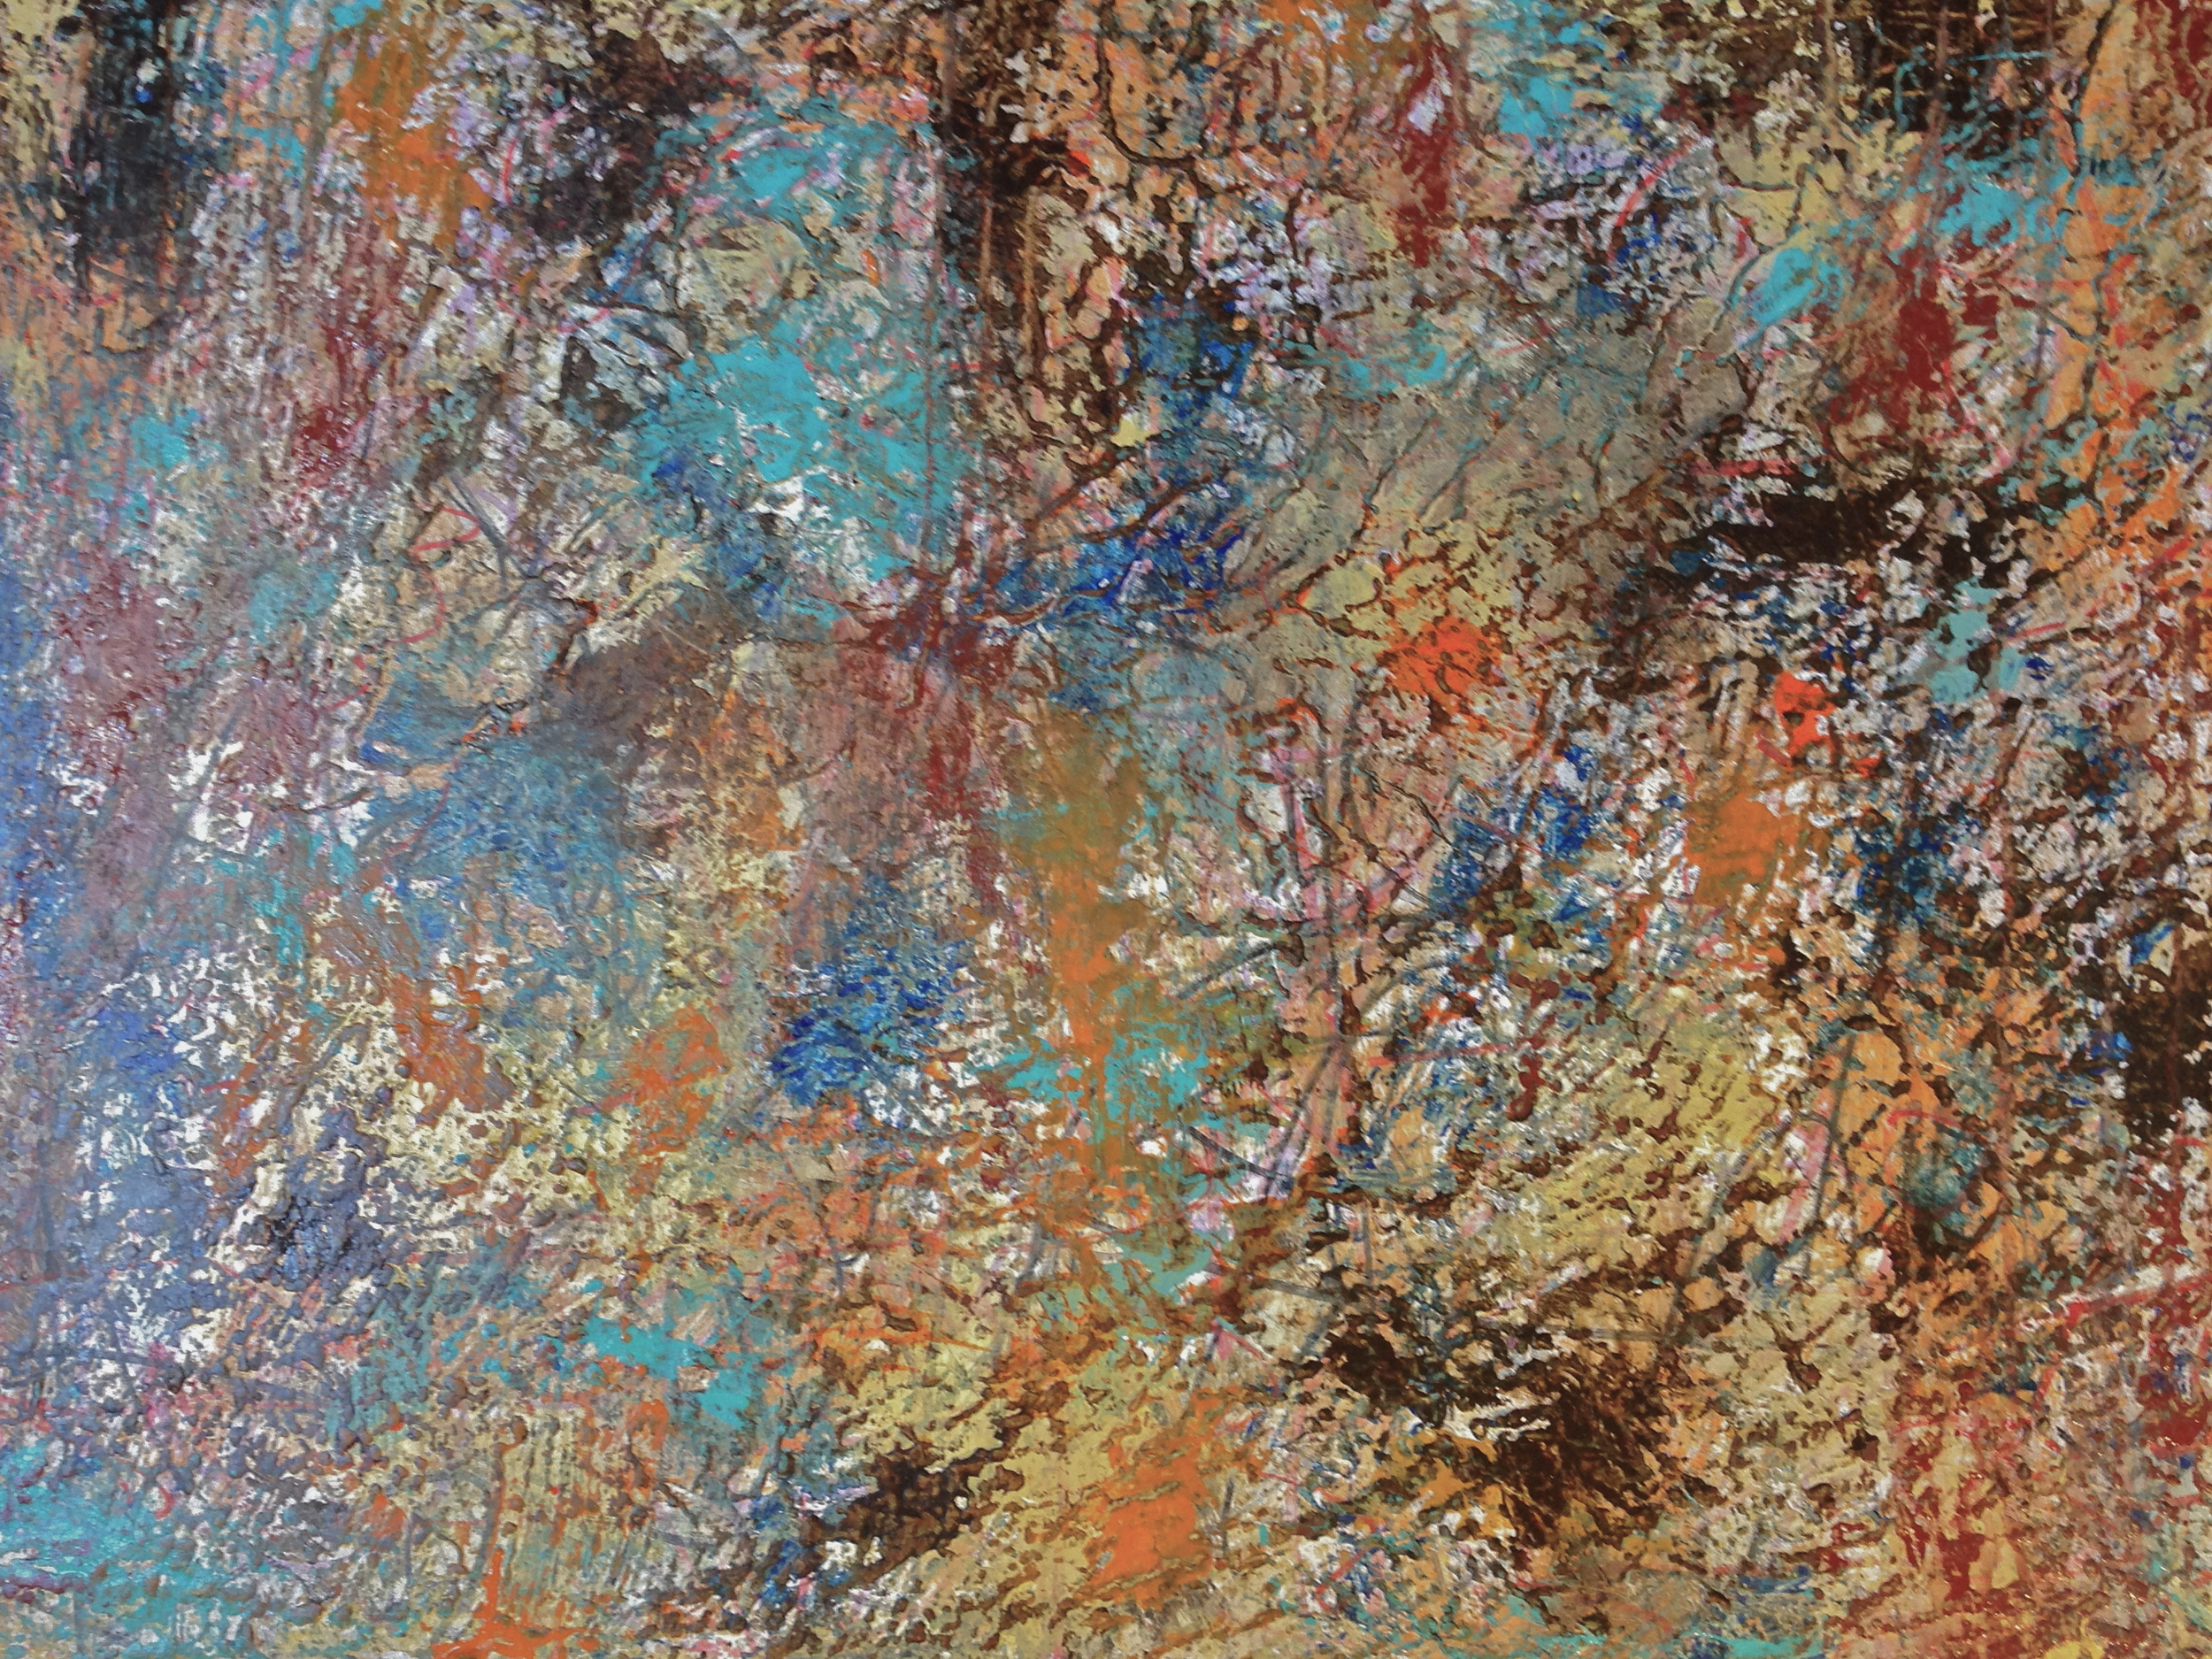 This is the abstract which initiate the figurative, I see forms of figures that I extract.